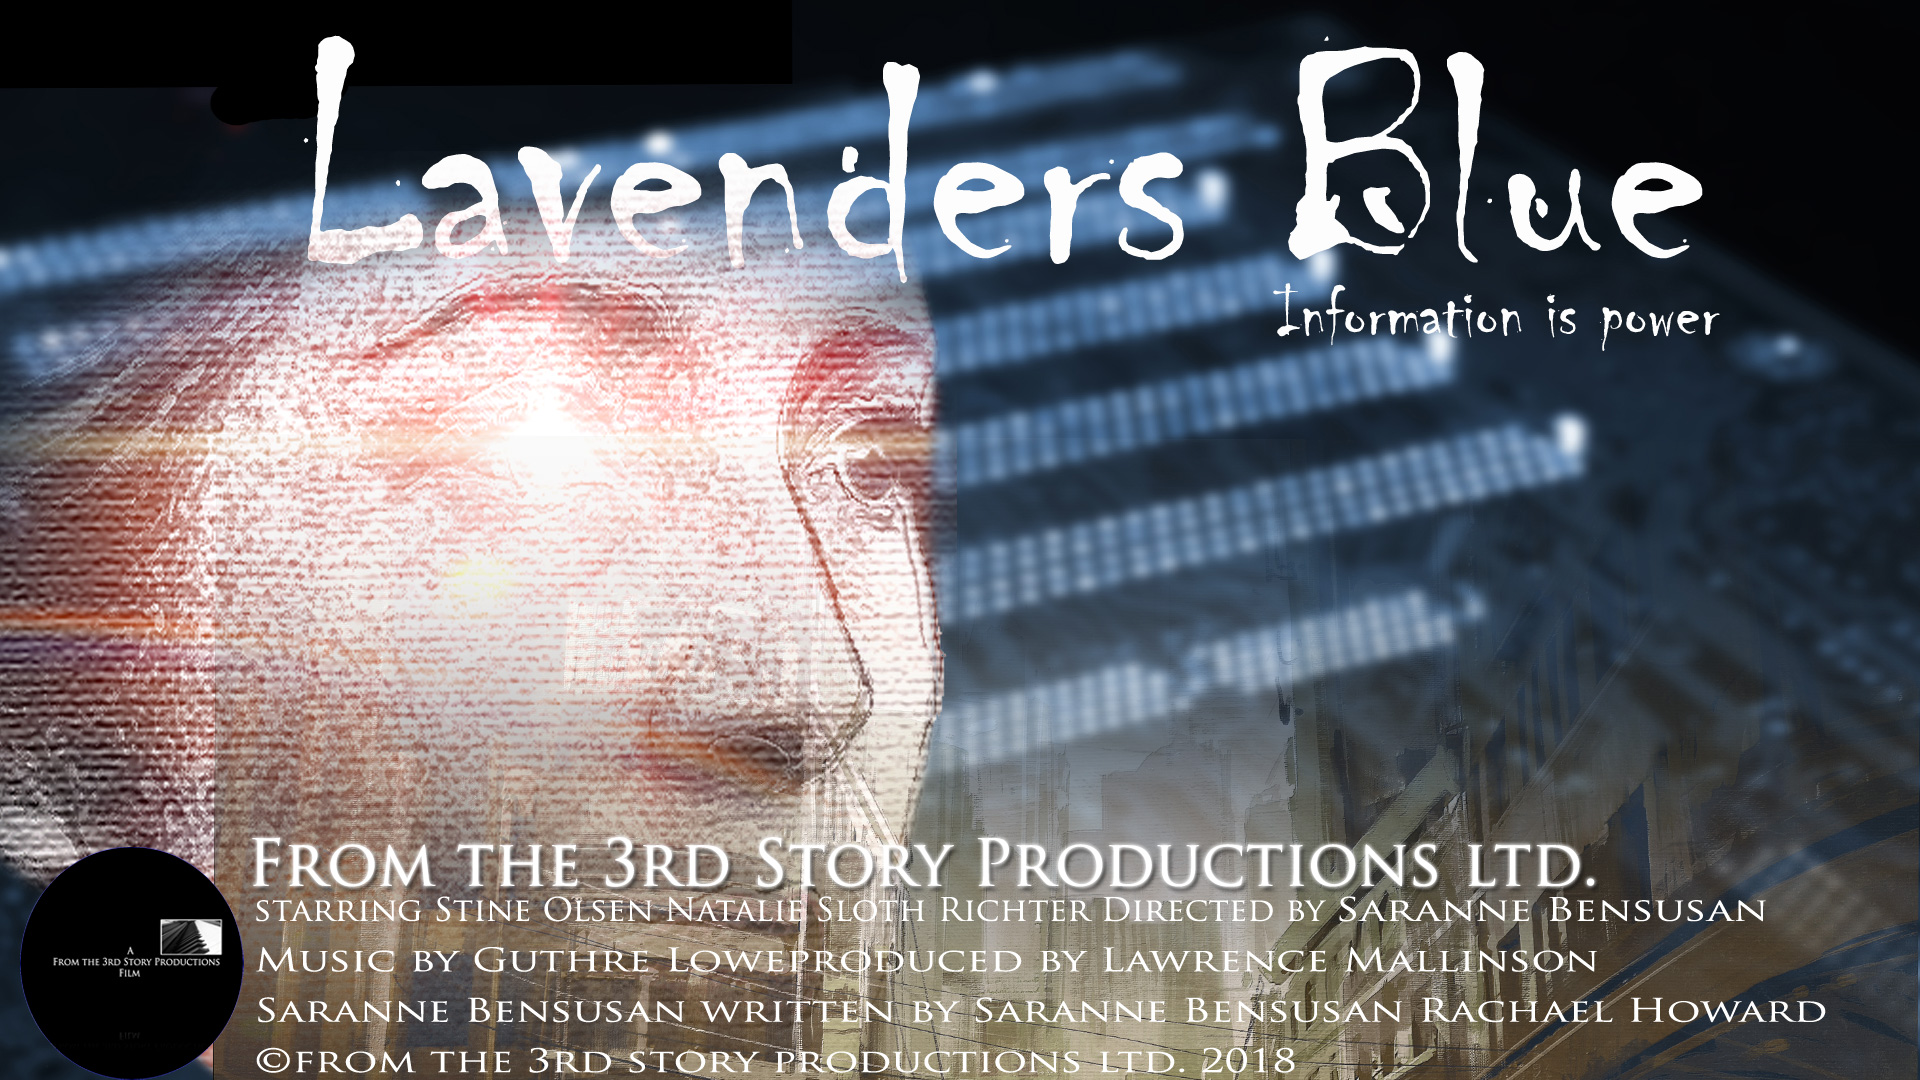 Lavender's Blue starring Stine Olsen, and directed by Saranne Bensusan, and written by Saranne Bensusan & Rachael Howard